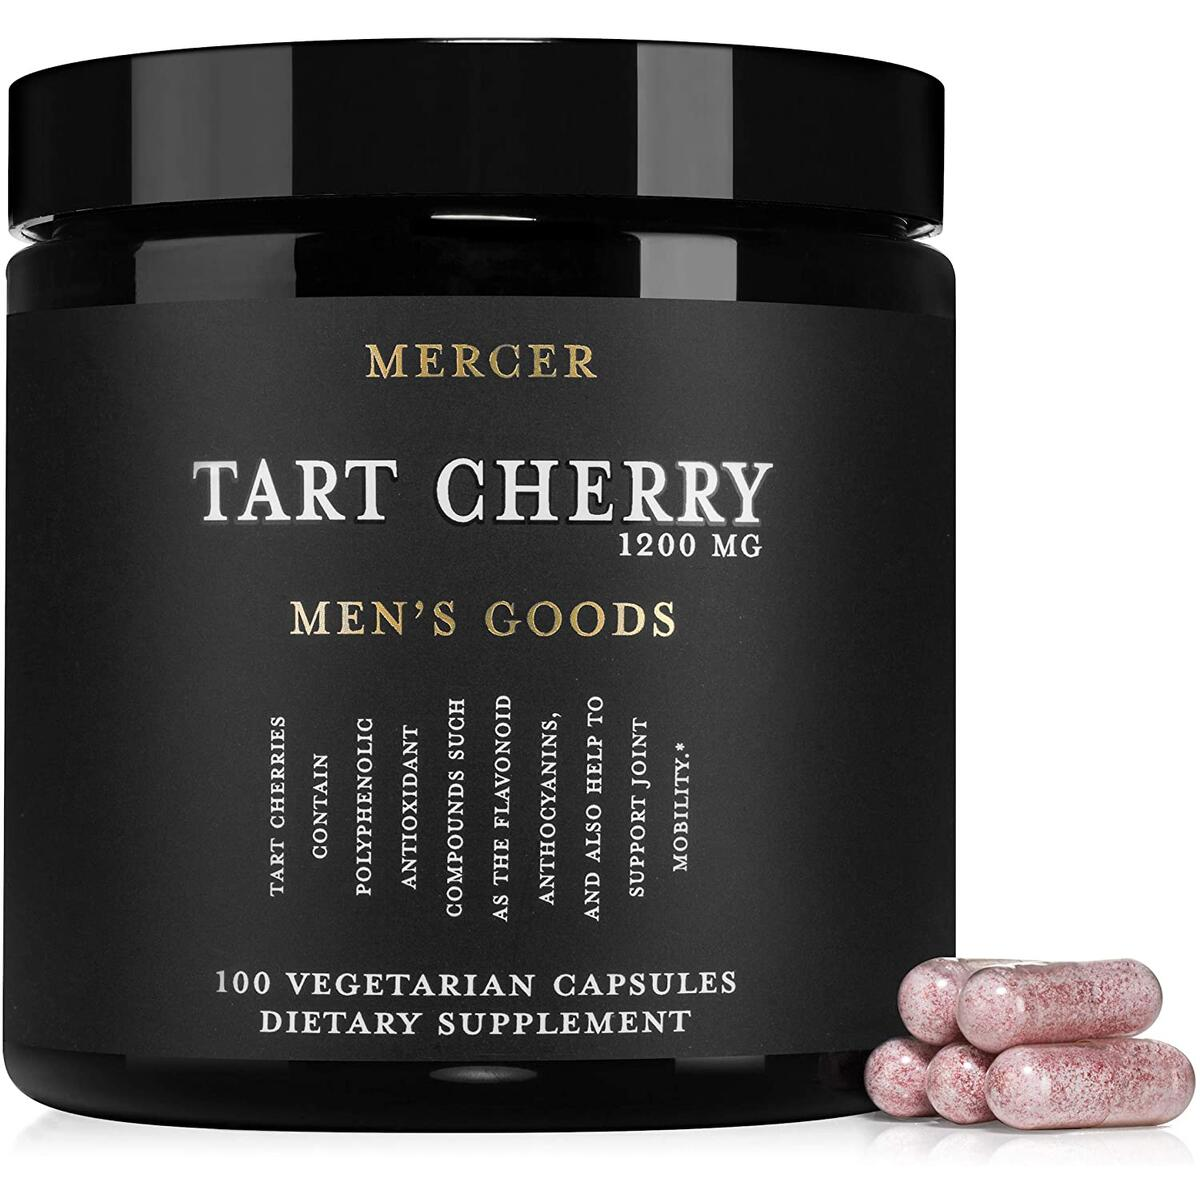 Mercer Tart Cherry 1200 MG, Tart Cherry Extract Capsules, 100 Vegetarian Capsules